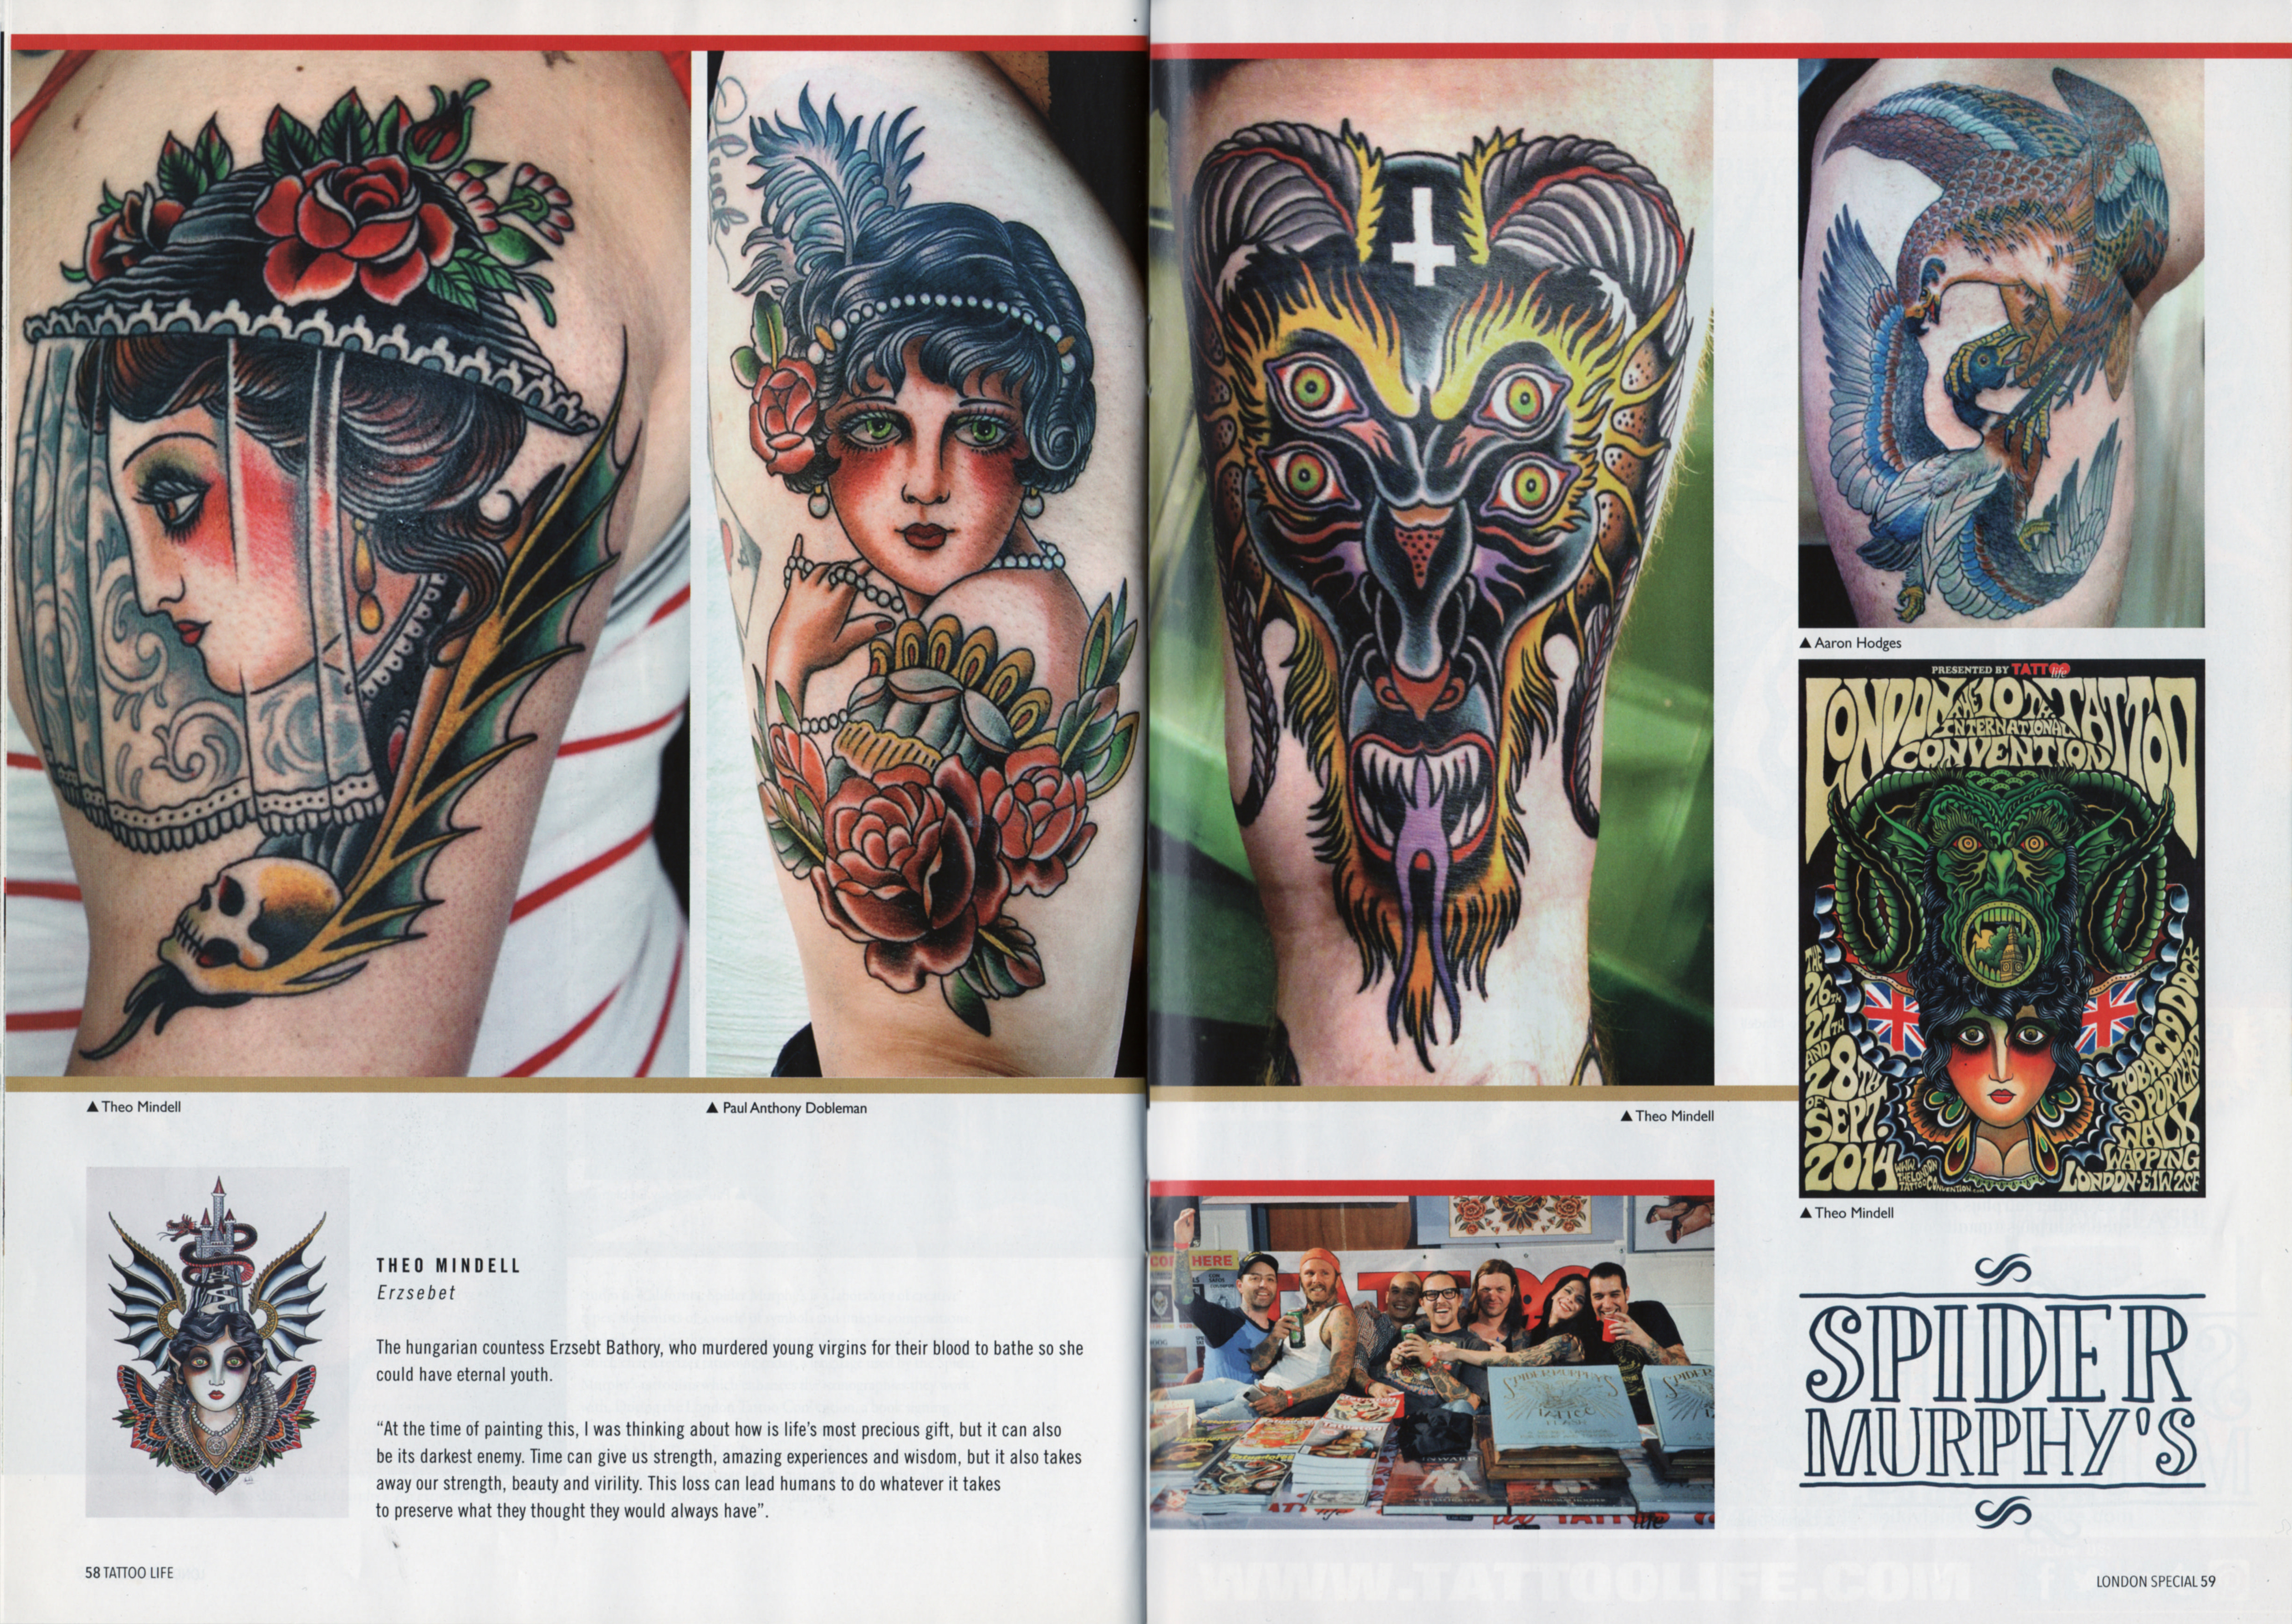 TATTOO LIFE #92 page 58-59